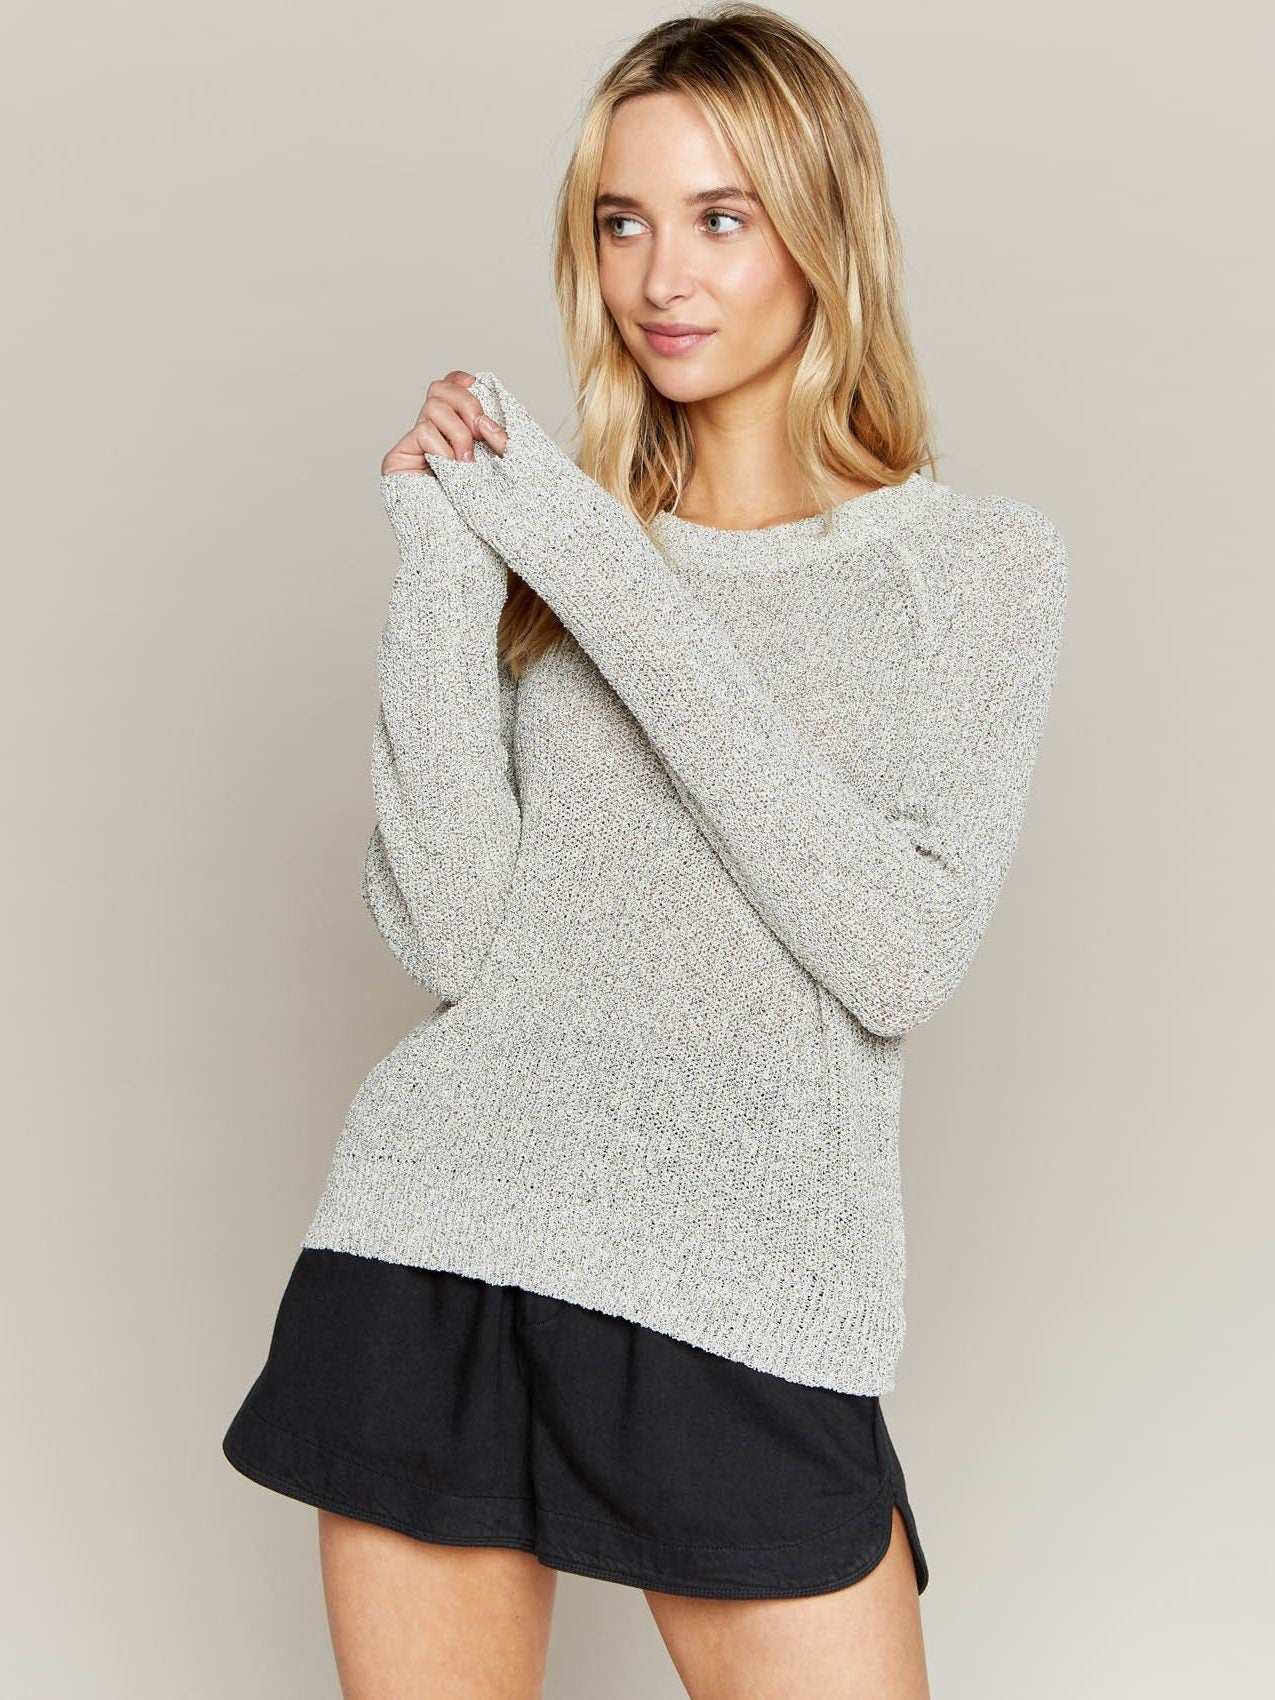 Rosemary Sweater Sweater Thread & Supply Cookies and Cream S